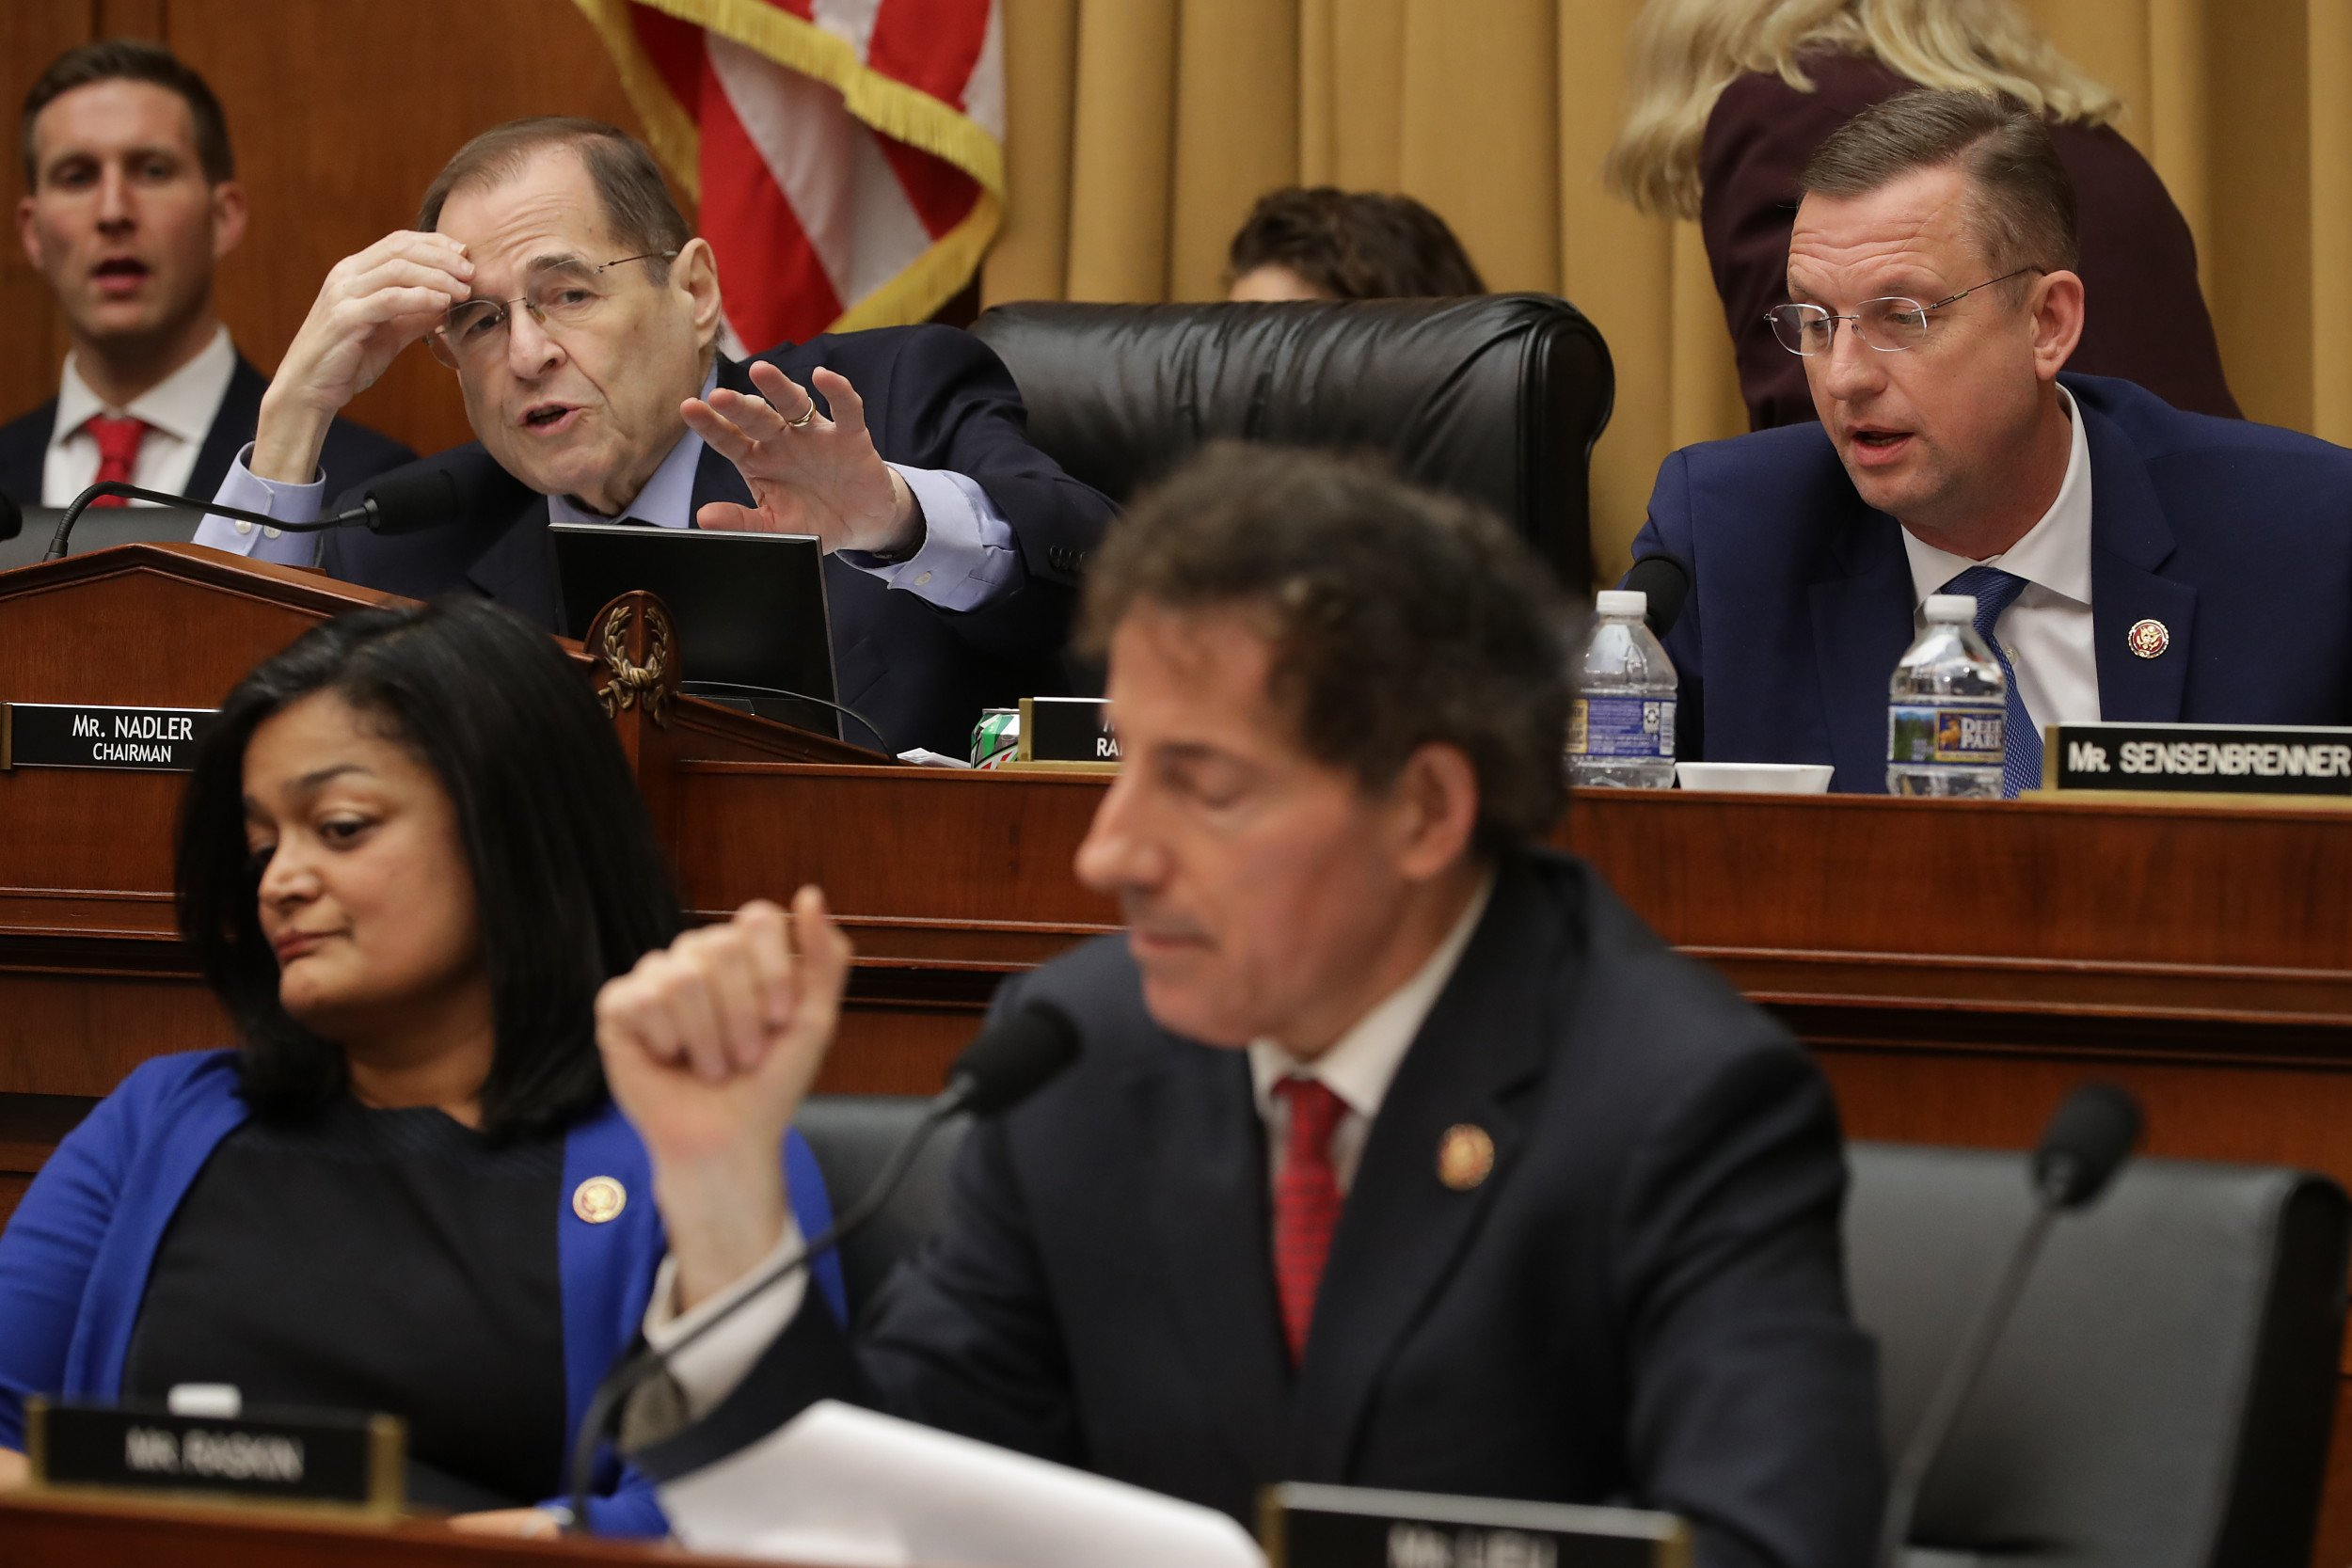 Livestream: How to Watch the House Judiciary Committee